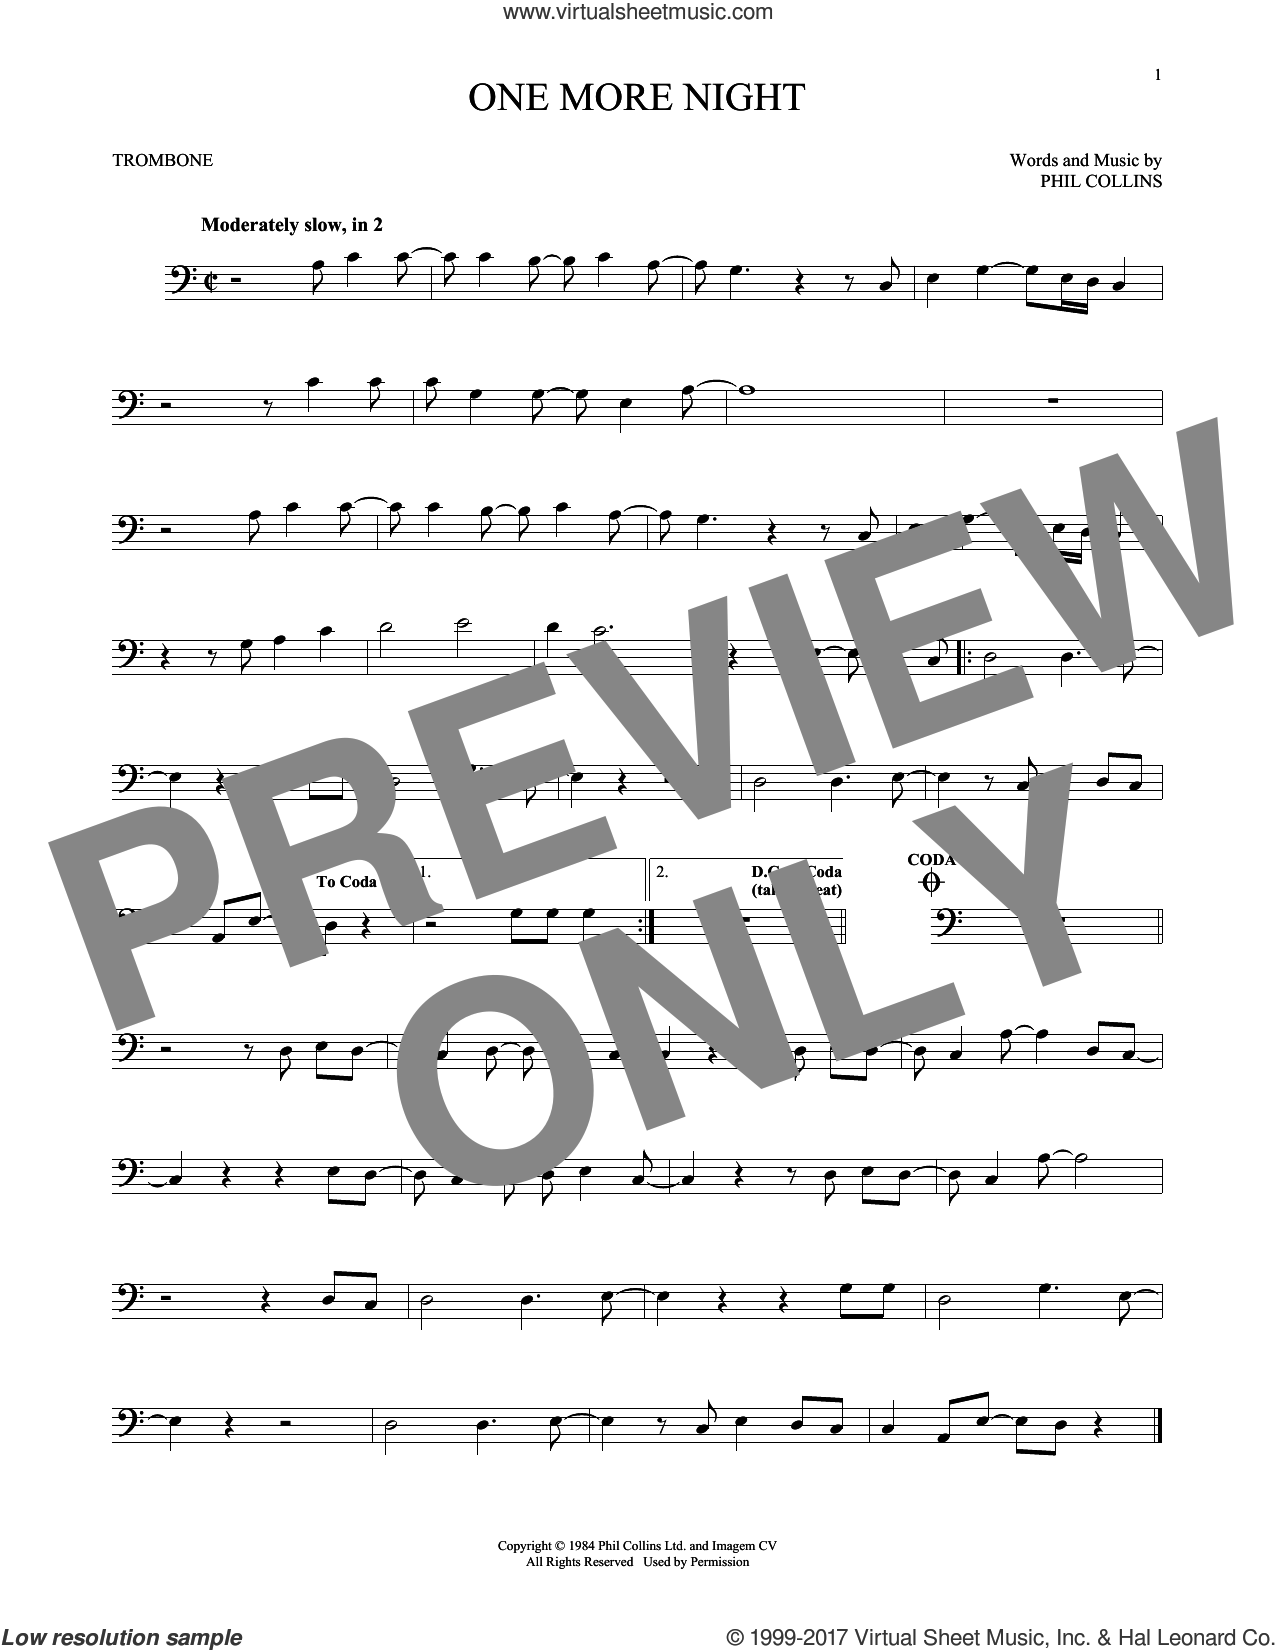 One More Night sheet music for trombone solo by Phil Collins, intermediate